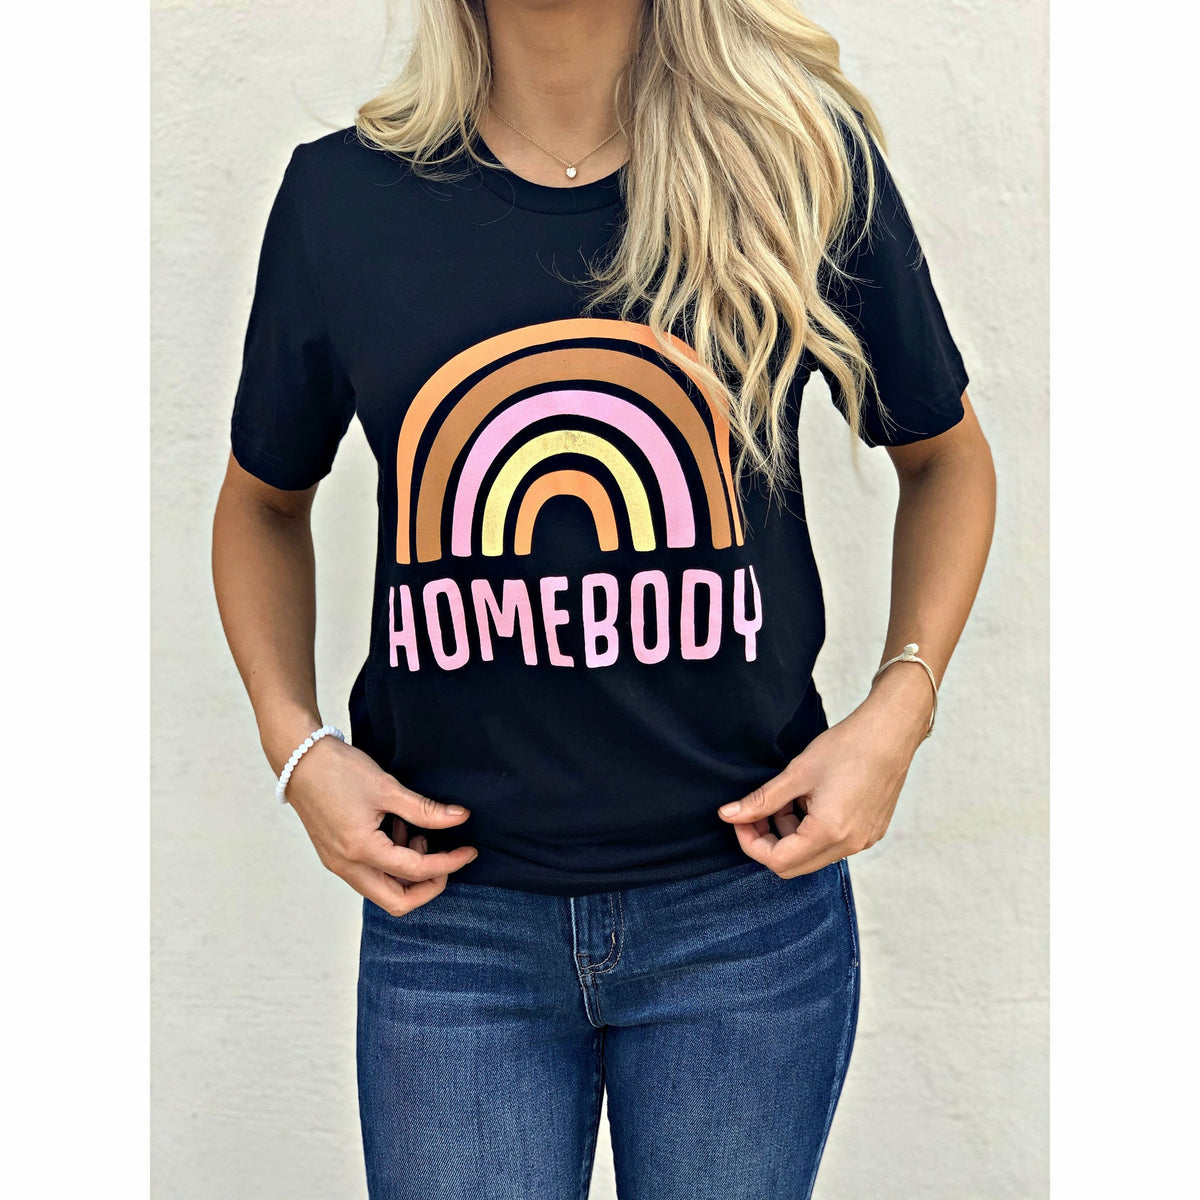 Homebody Boutique Tee